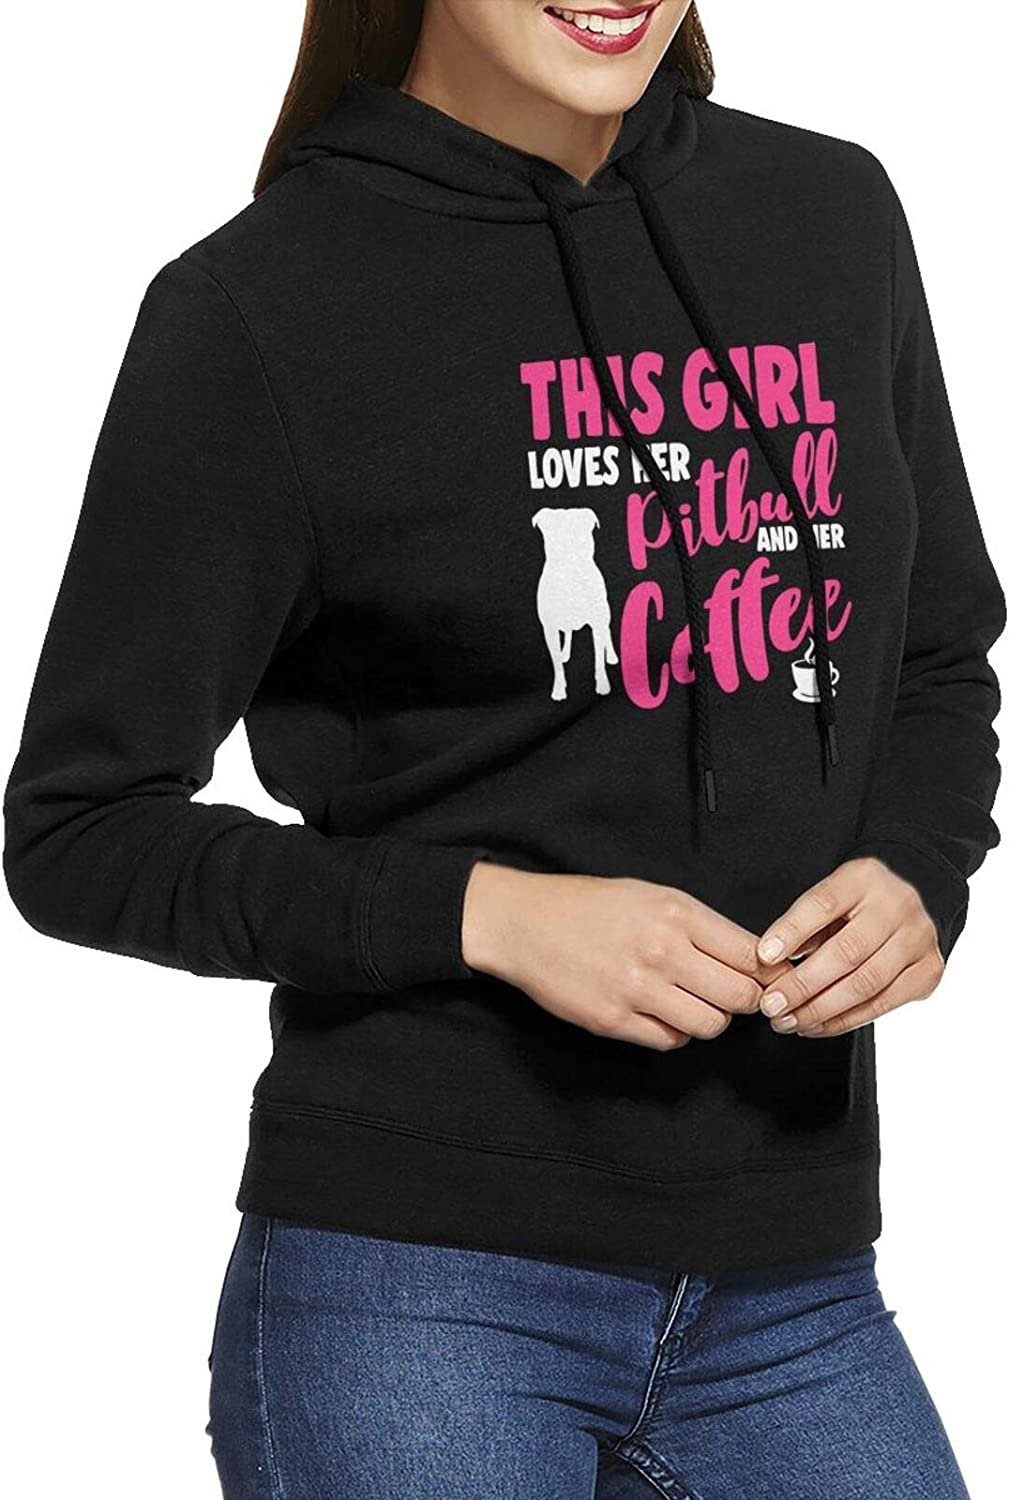 This Girl Loves Her Spring new work one after another Pitbull Long Challenge the lowest price of Japan Sleeve Pullover Hoodie Women's